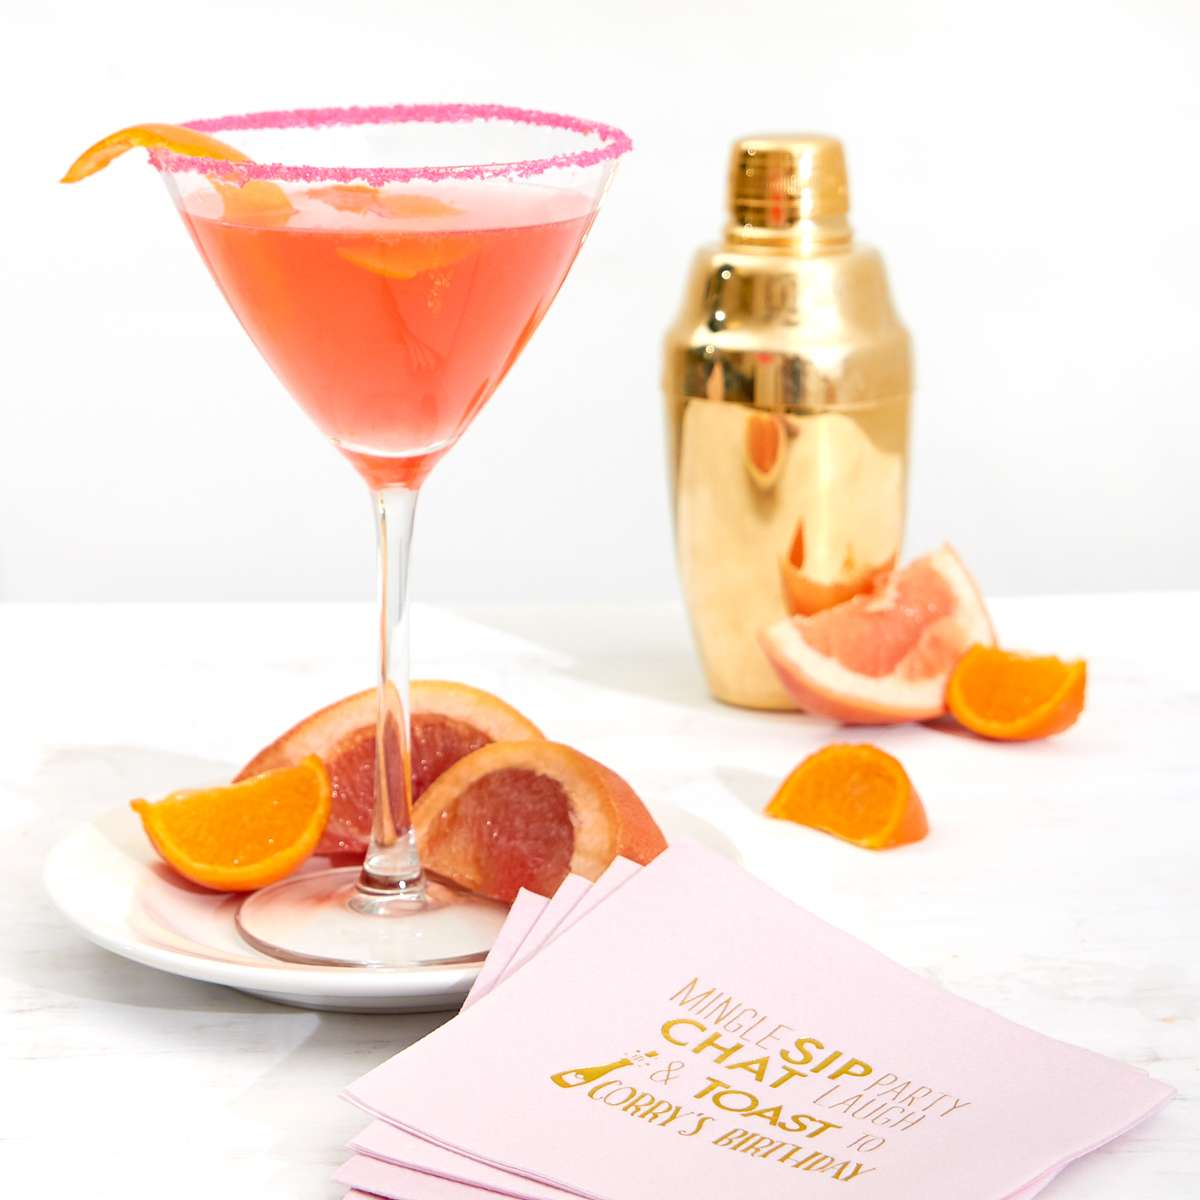 Grapefruit Martini cocktail recipe with cocktail napkin